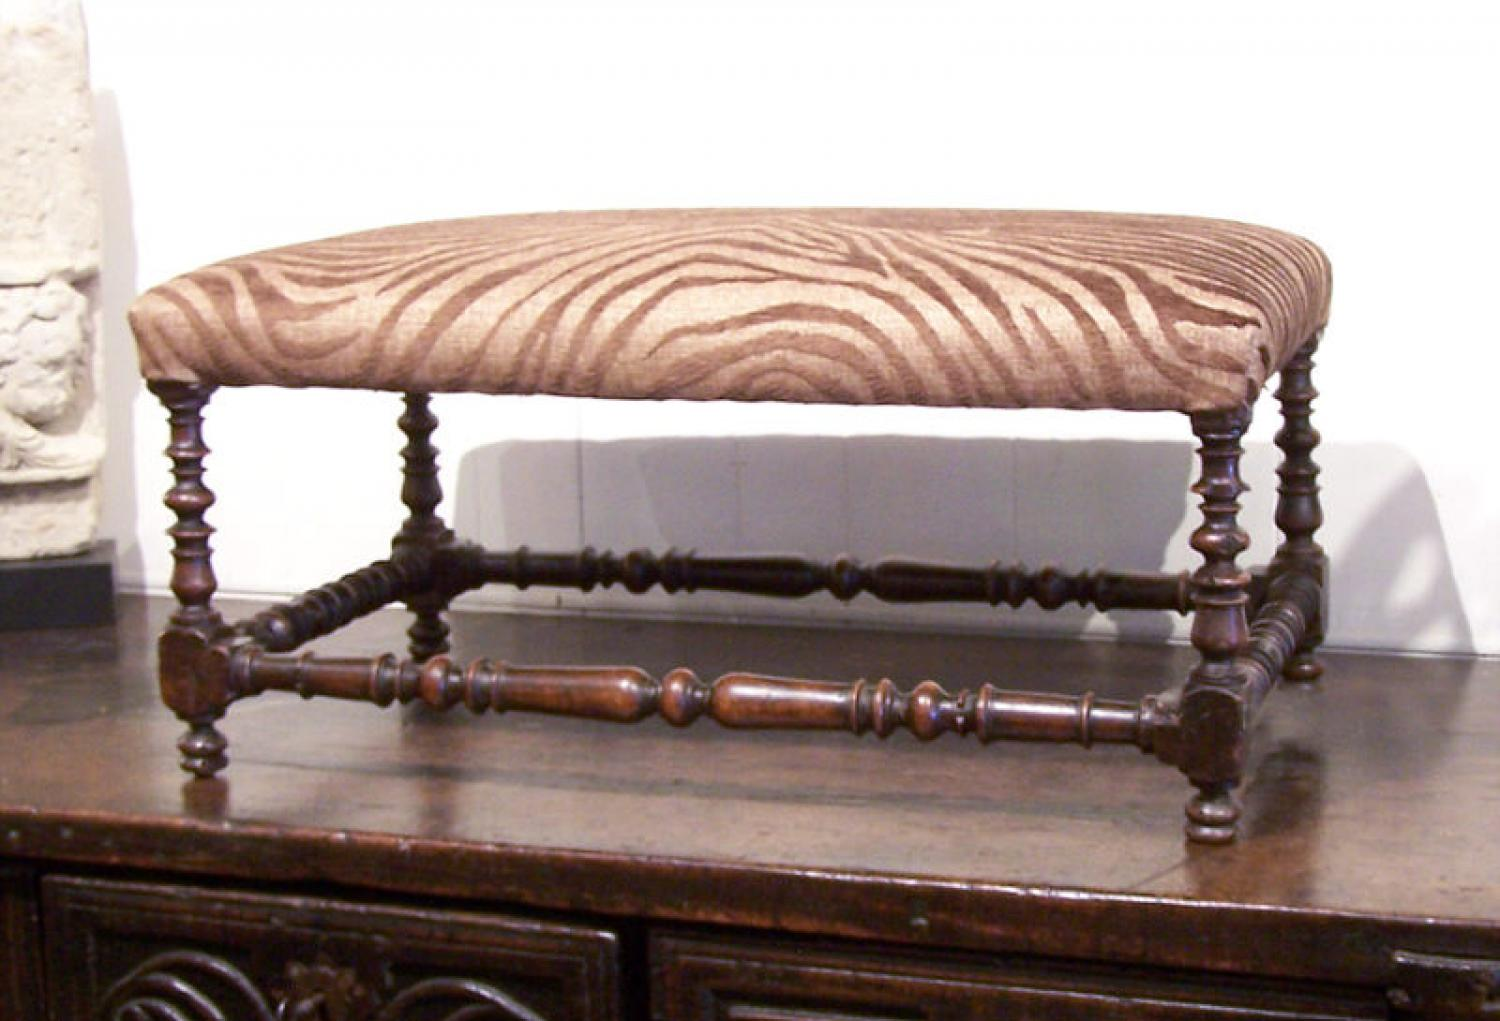 17thc  Italian walnut twist leg bench in zebra upholstery